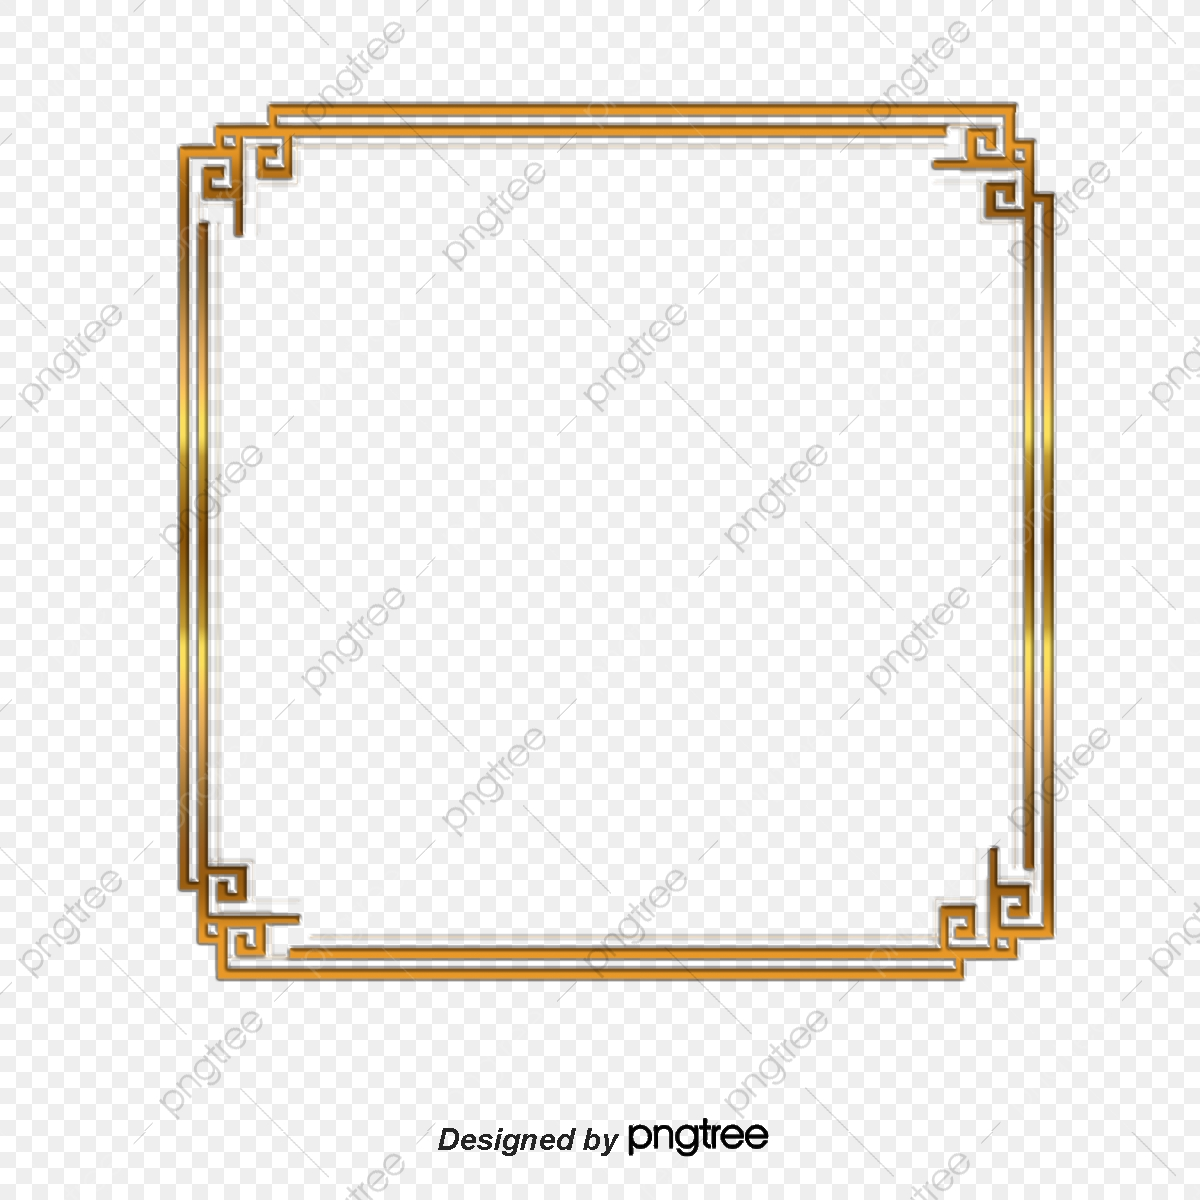 Square Frame Vector Png - Vector Golden Square Frame, Square Vector, Frame Vector, Vector ...